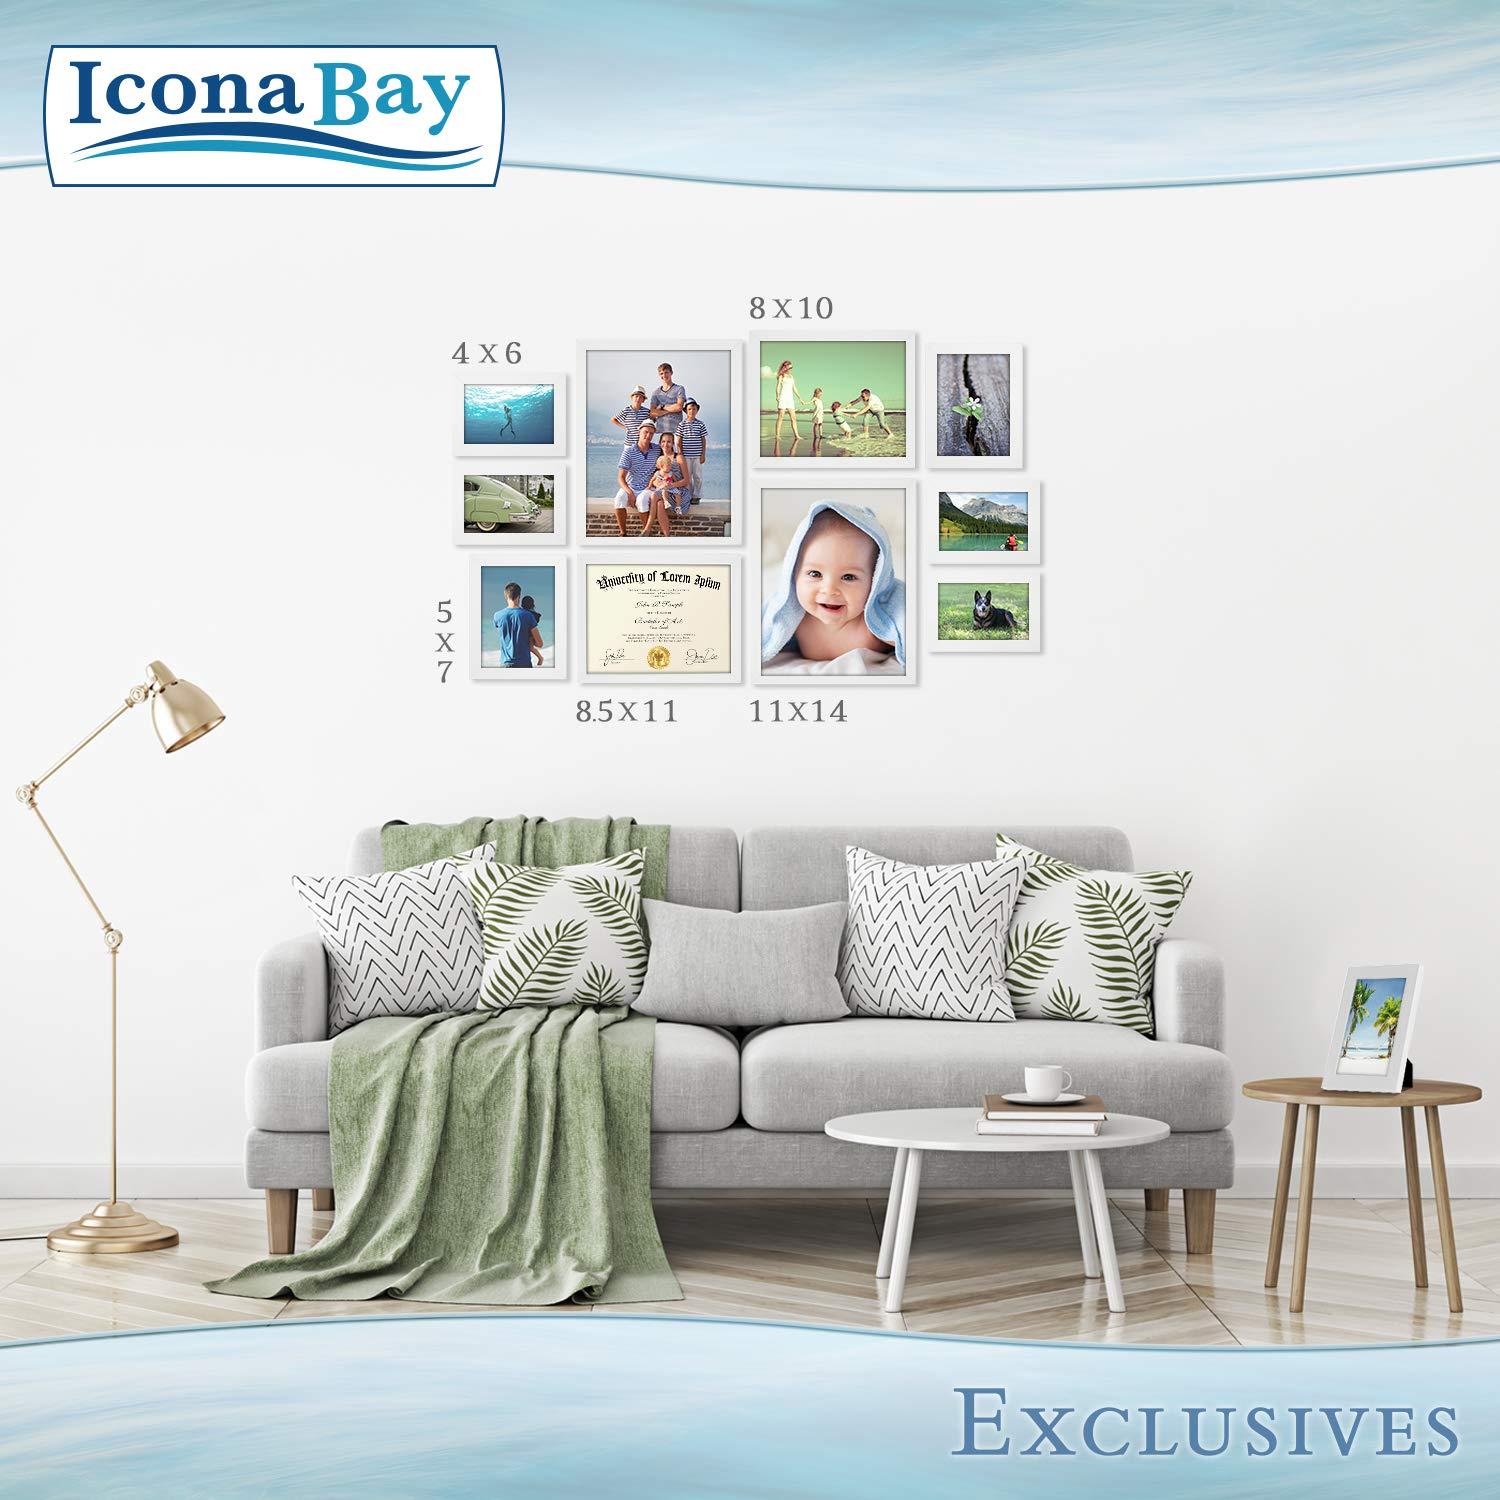 Icona Bay 8x10 Picture Frame (6 Pack, White), White Sturdy Wood Composite Photo Frame 8 x 10, Wall or Table Mount, Set of 6 Exclusives Collection by Icona Bay (Image #7)